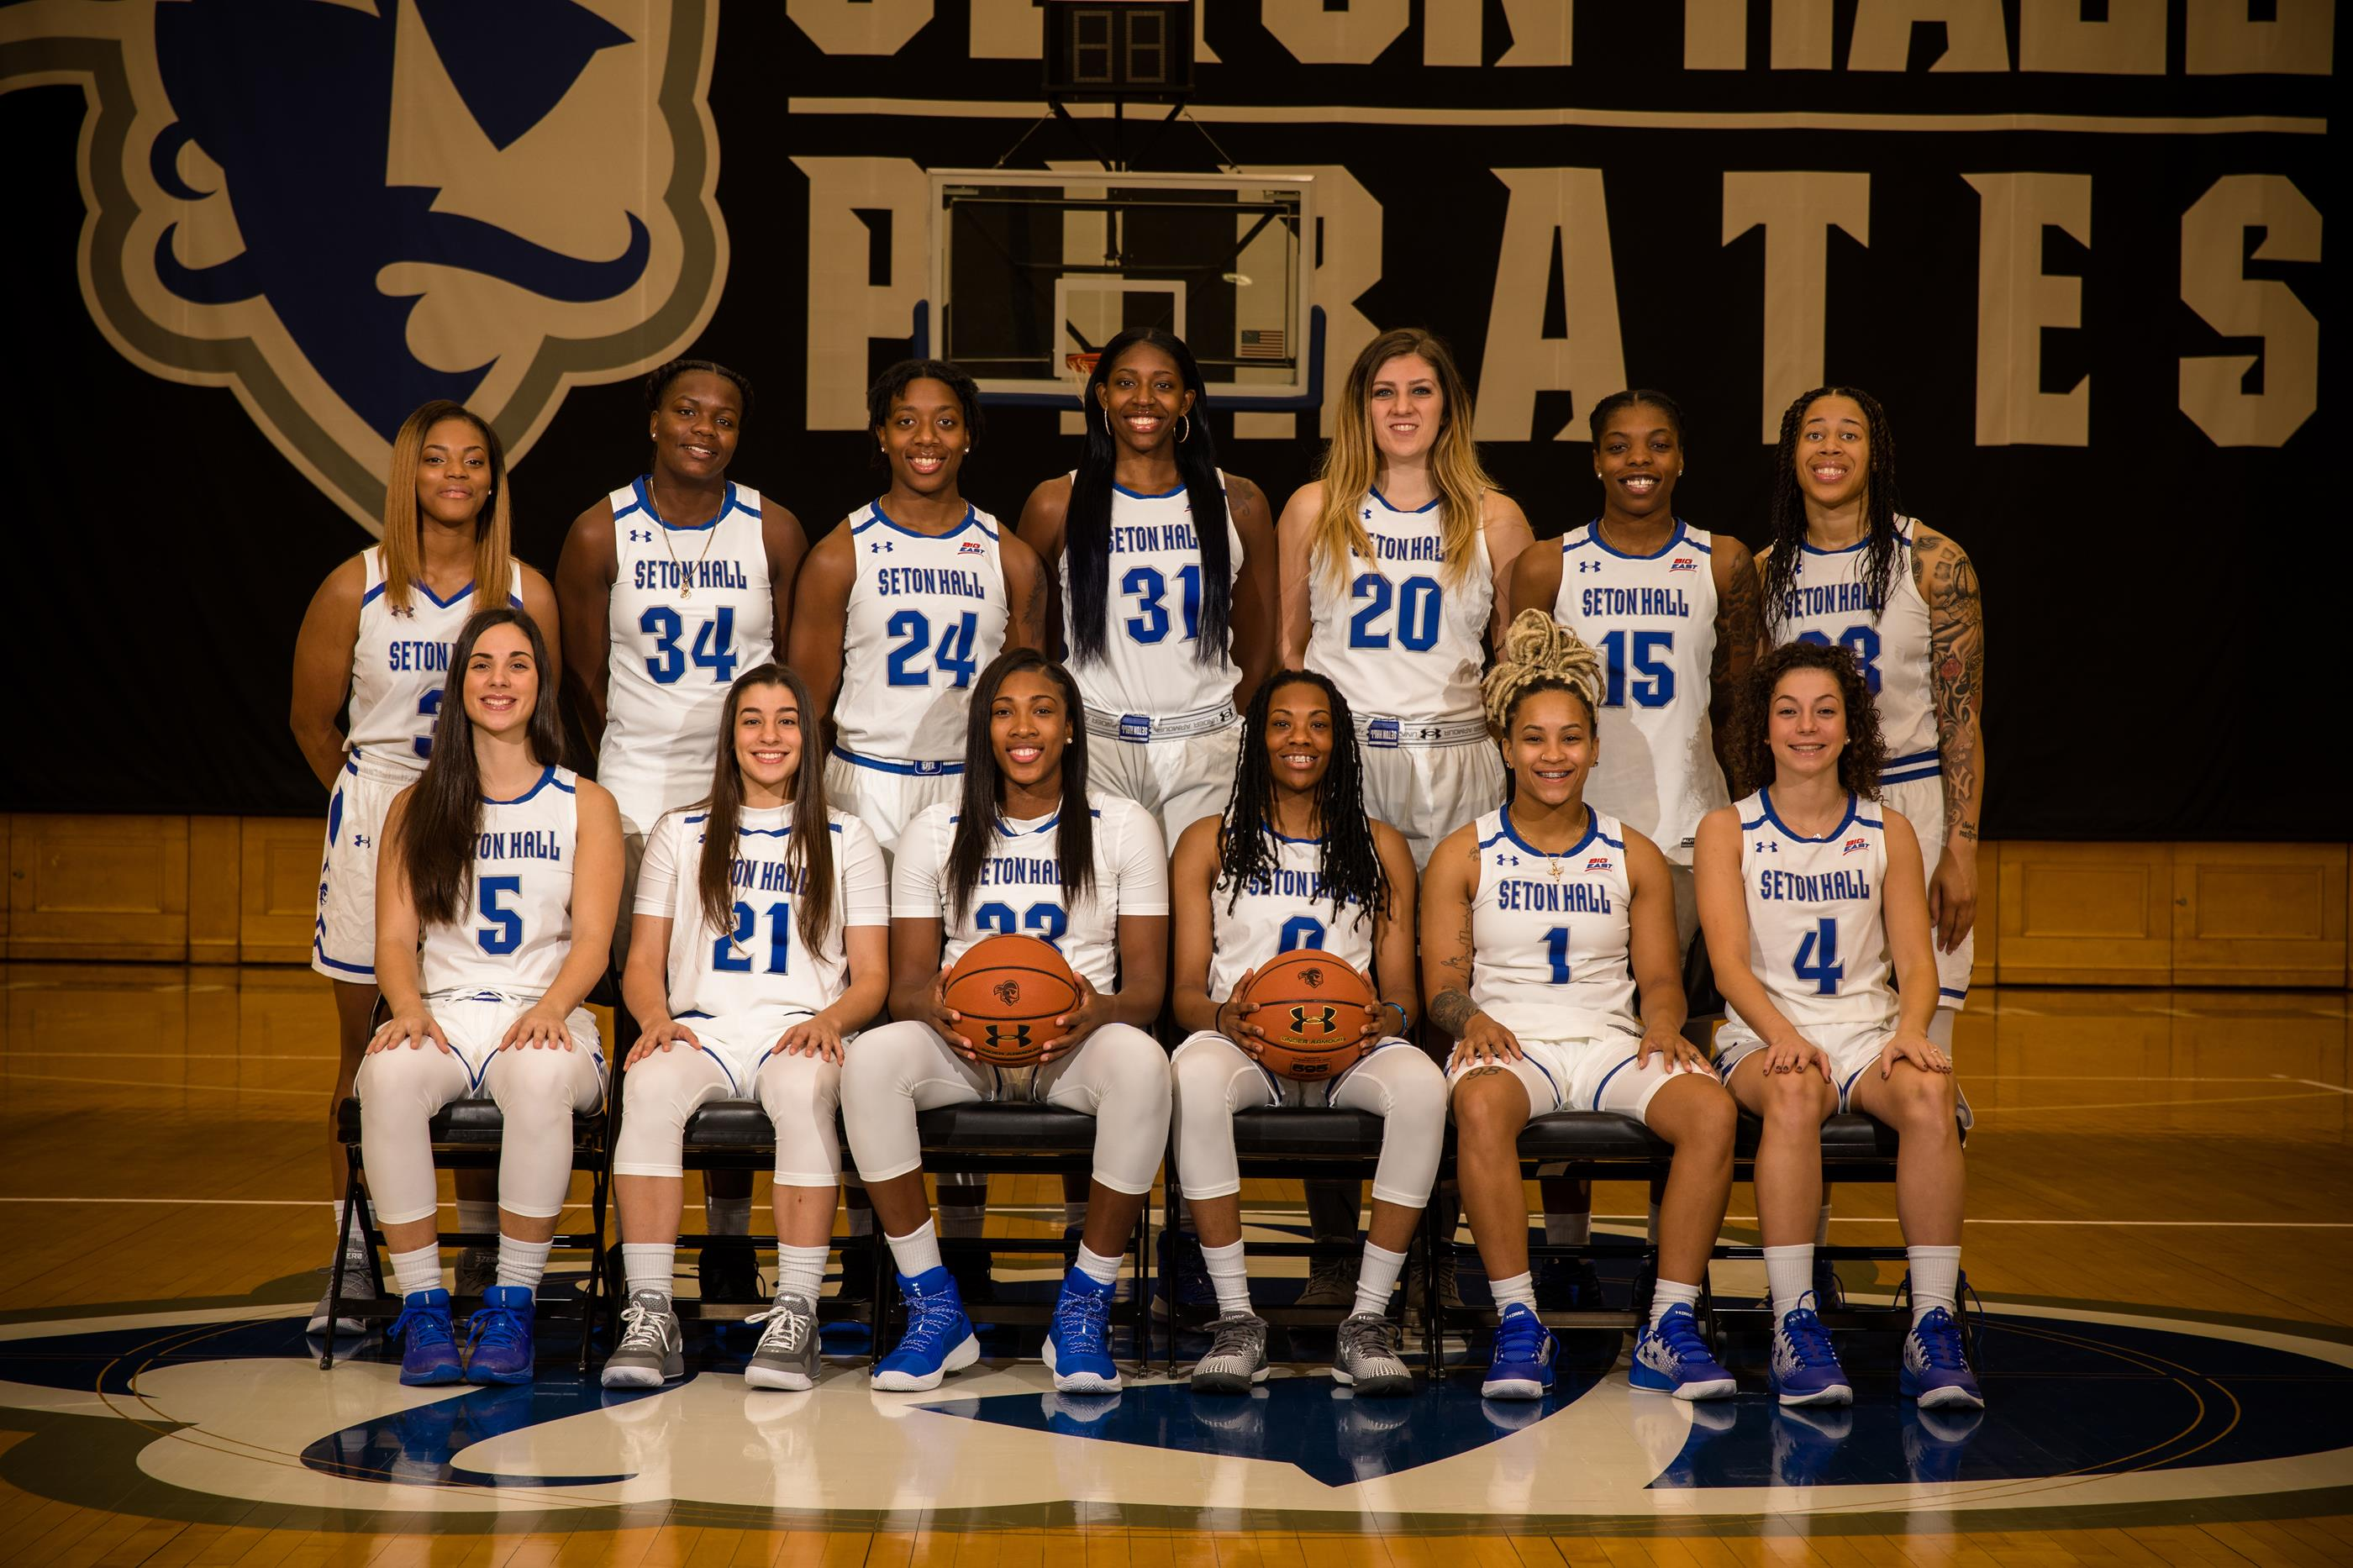 pirates open 2017-18 season on friday afternoon - seton hall